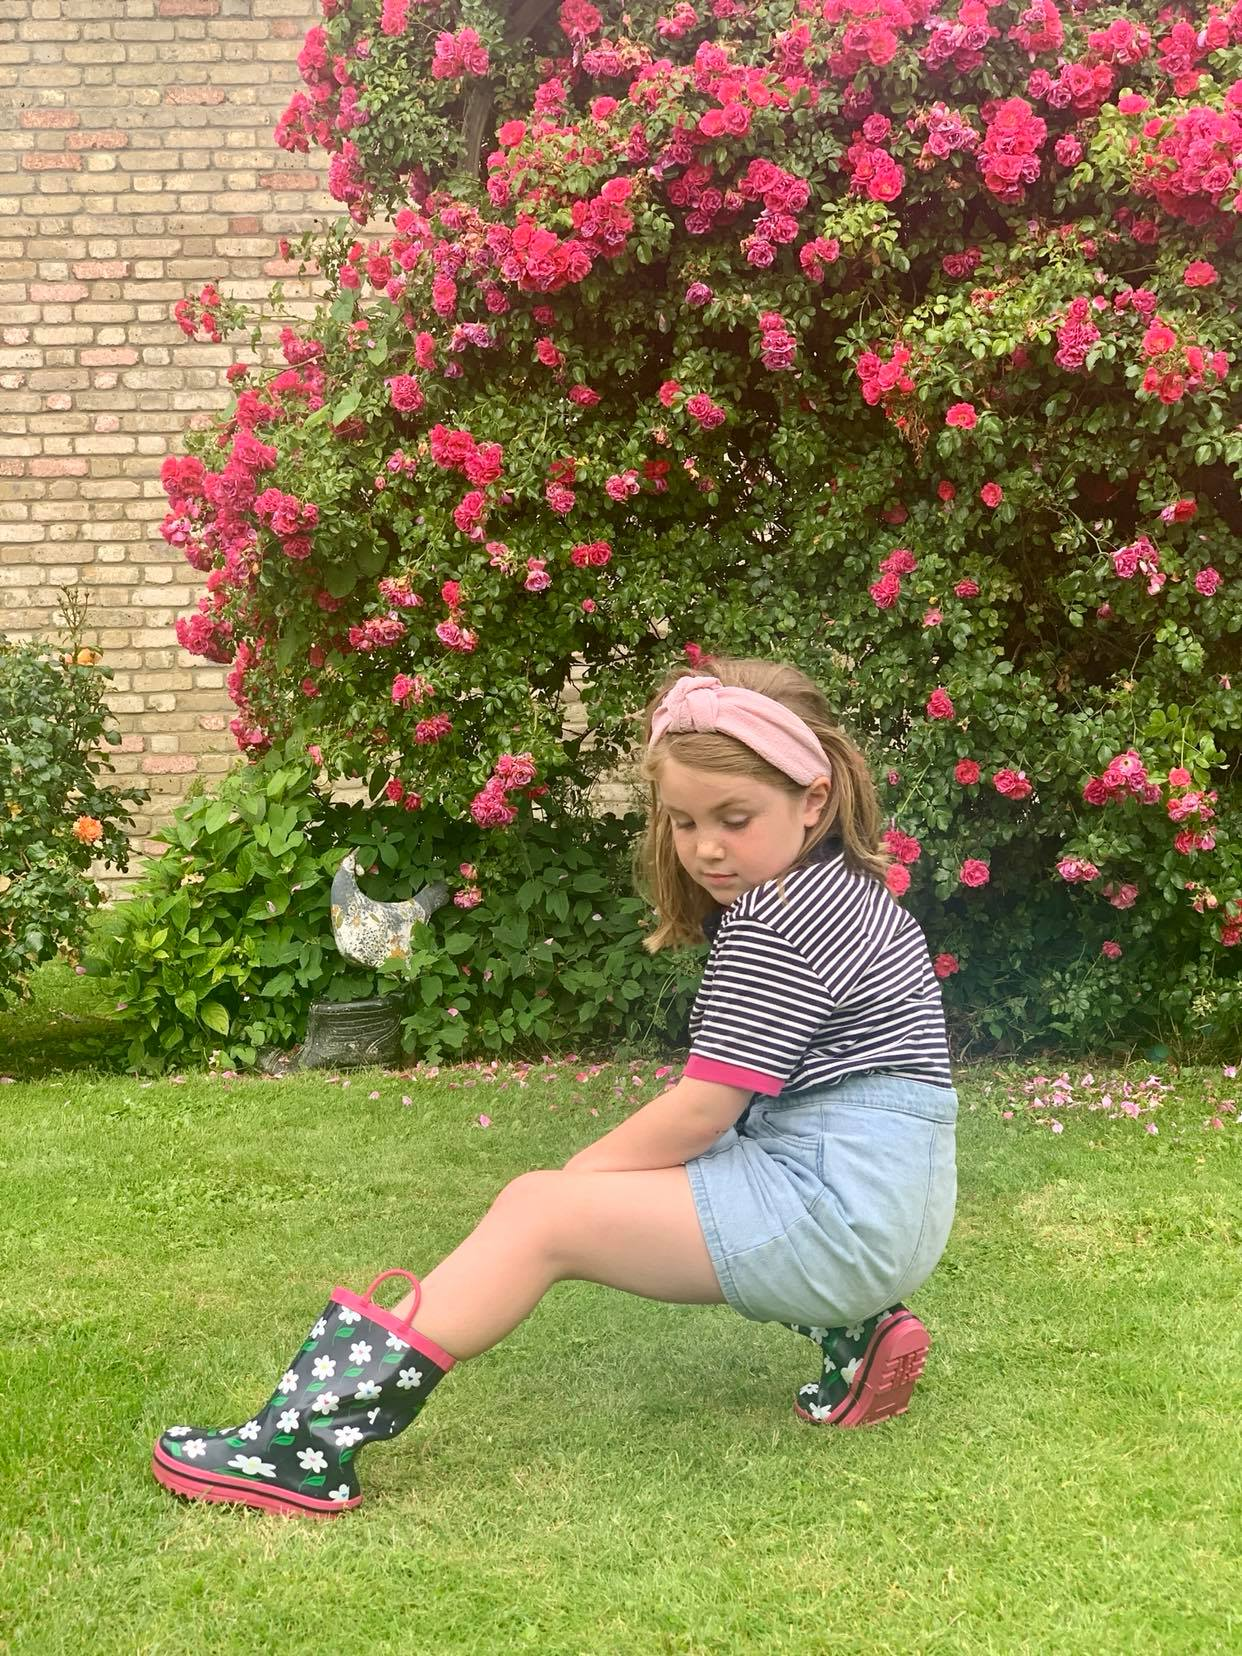 Rydale childrens wear, polo shirts and welleis, a suffolk mum review